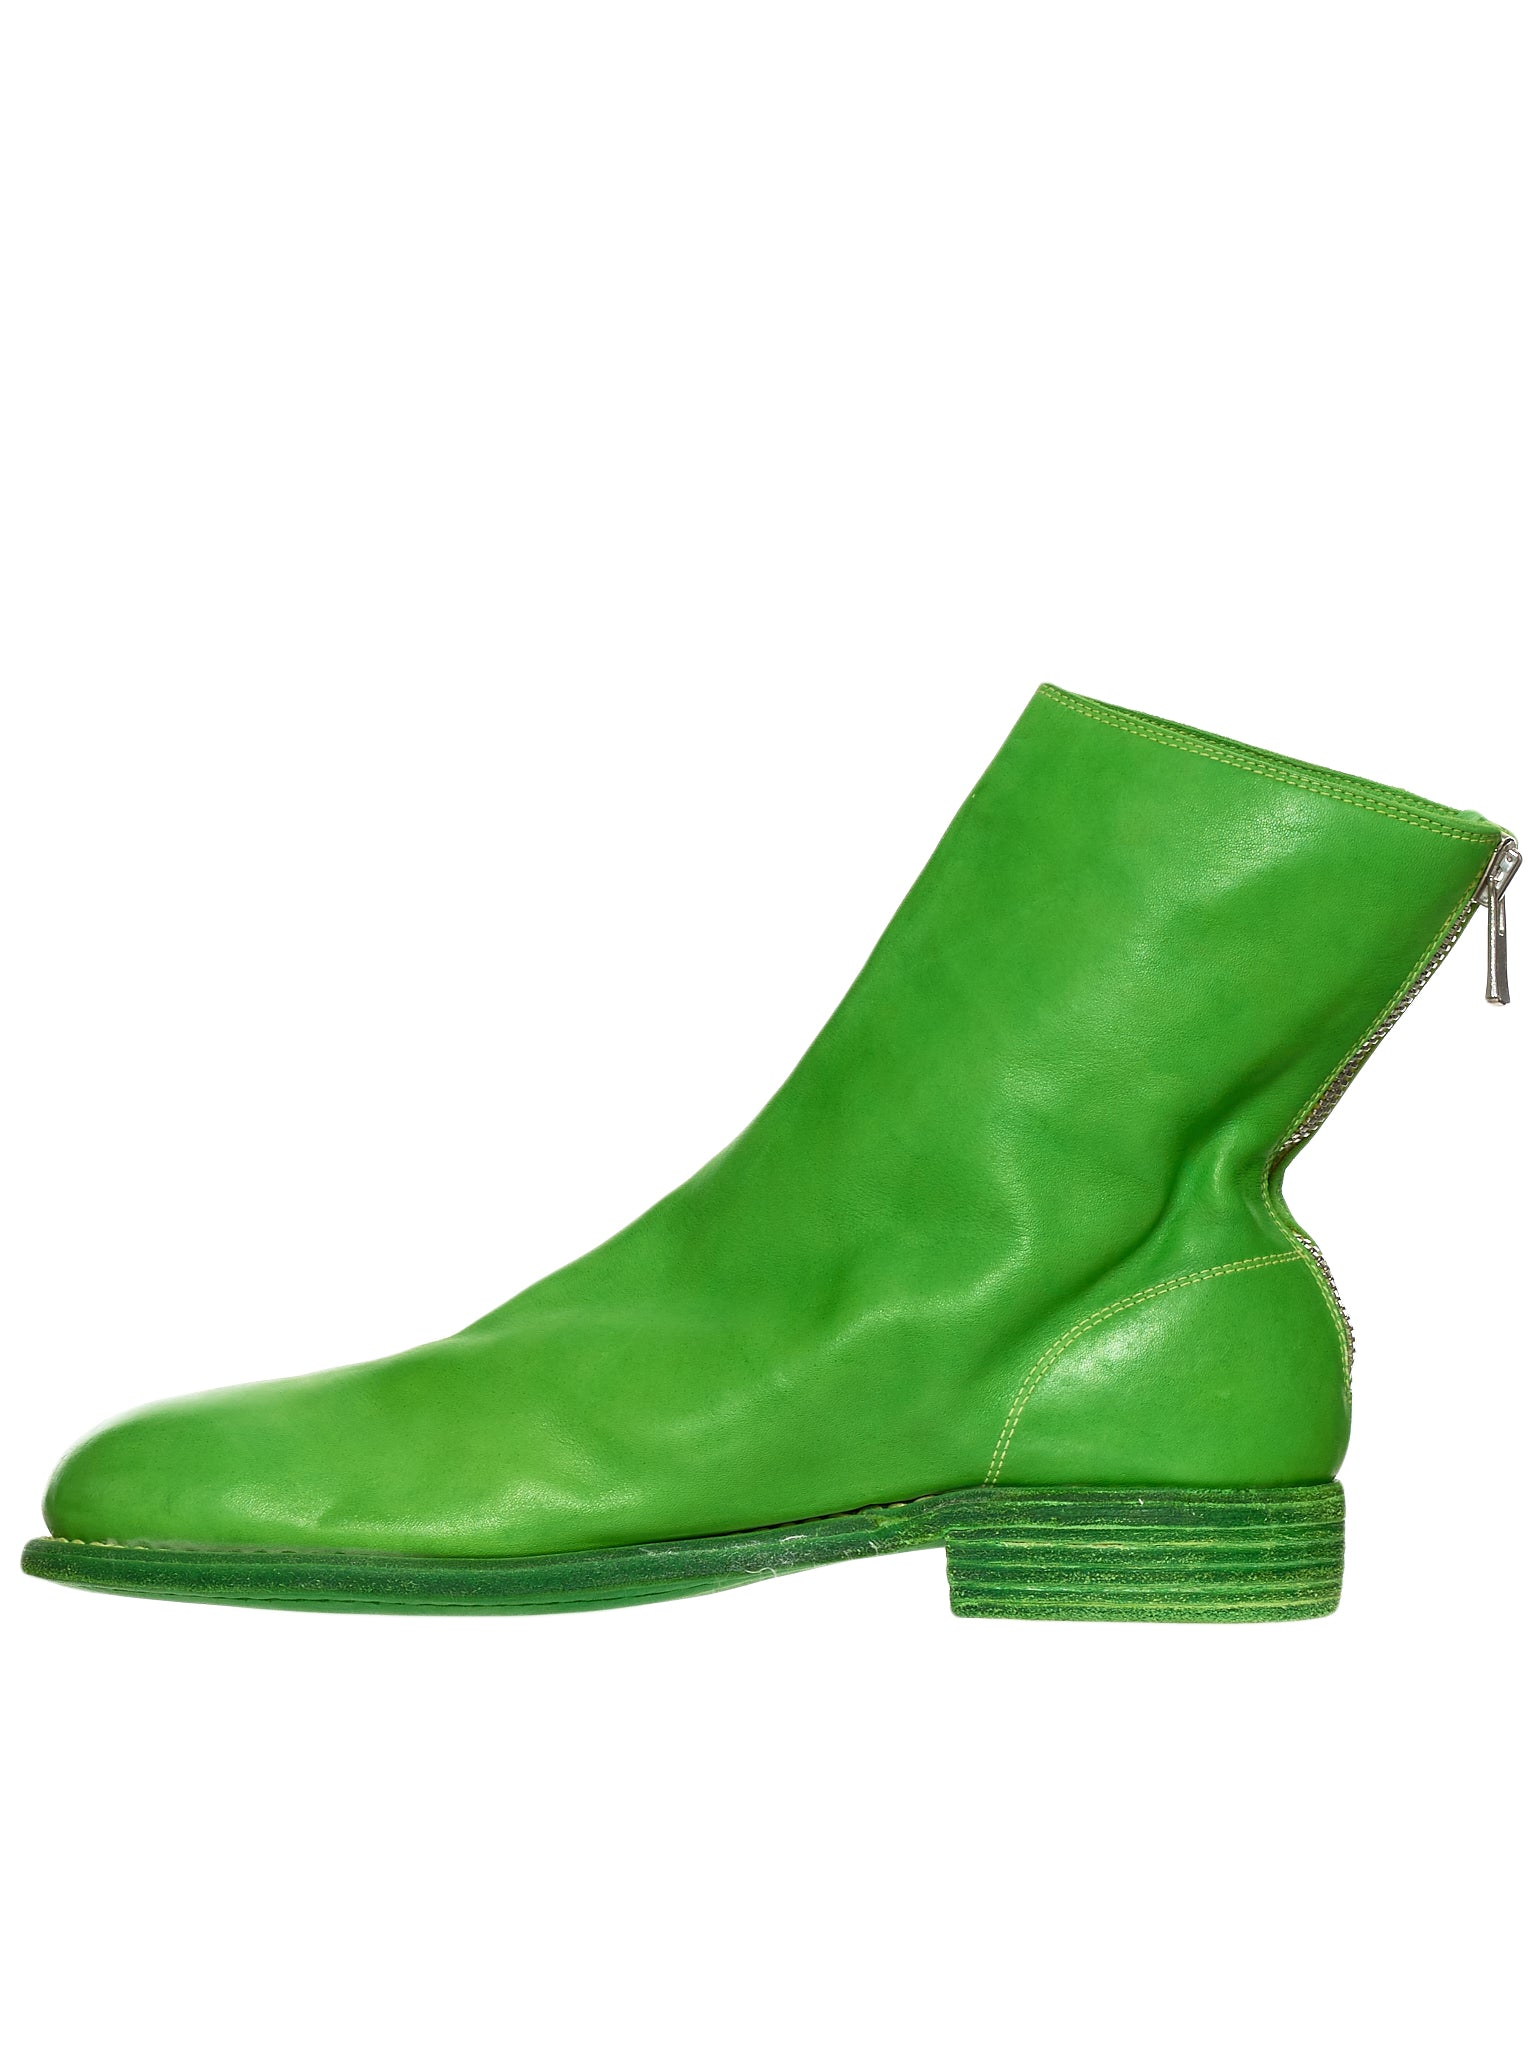 Guidi 986 Green Boot - Hlorenzo Back